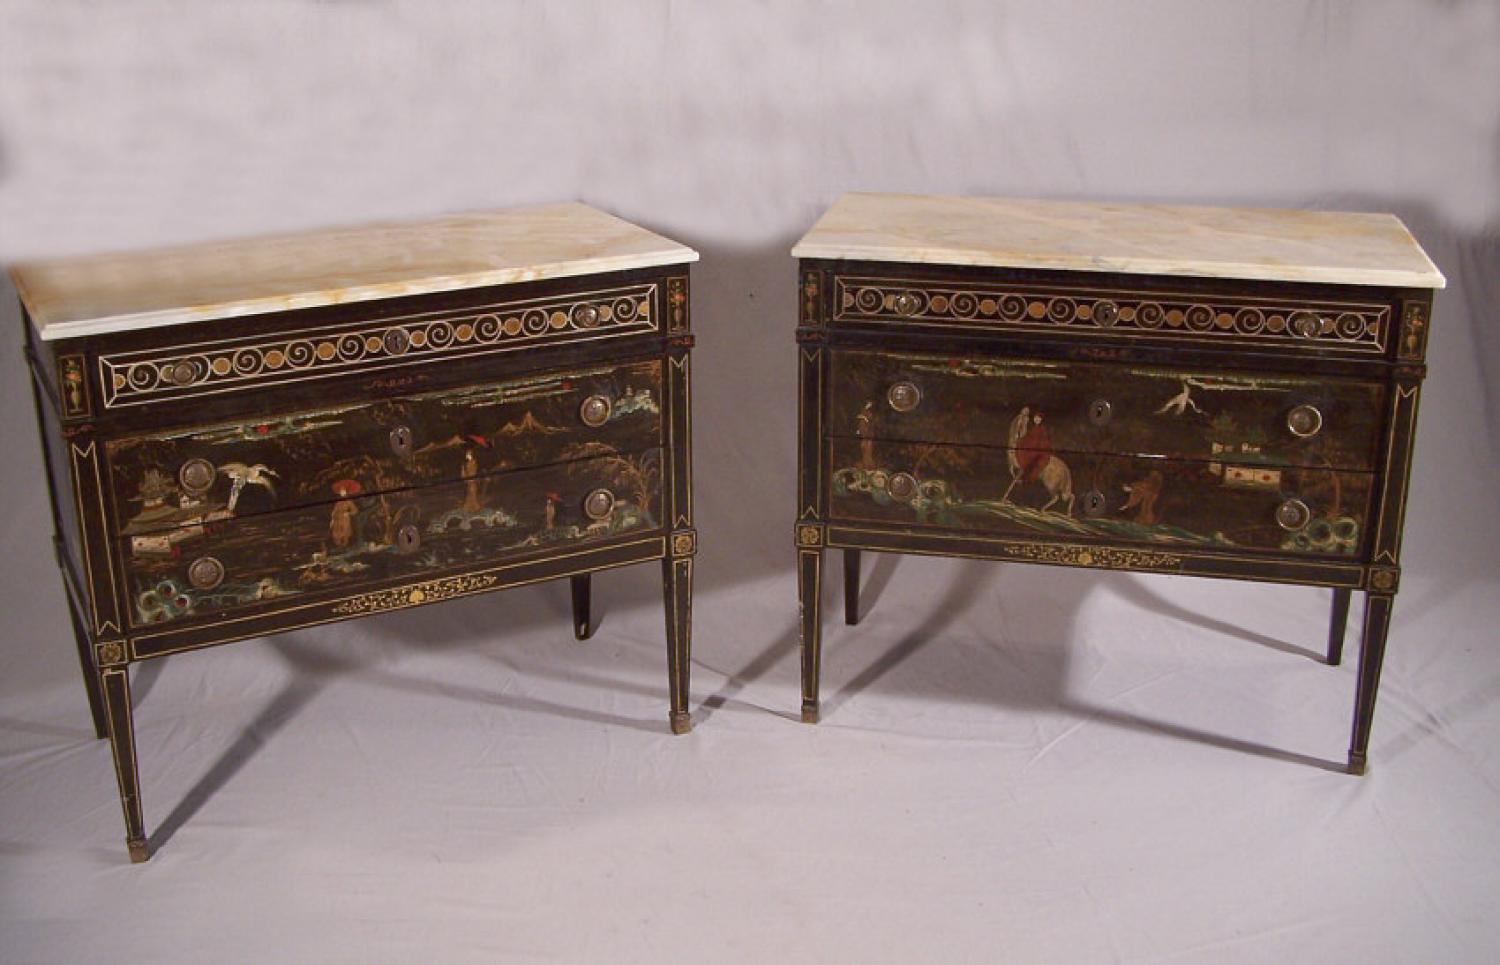 Pair of French 19th century chinoiserie dresser with marble tops